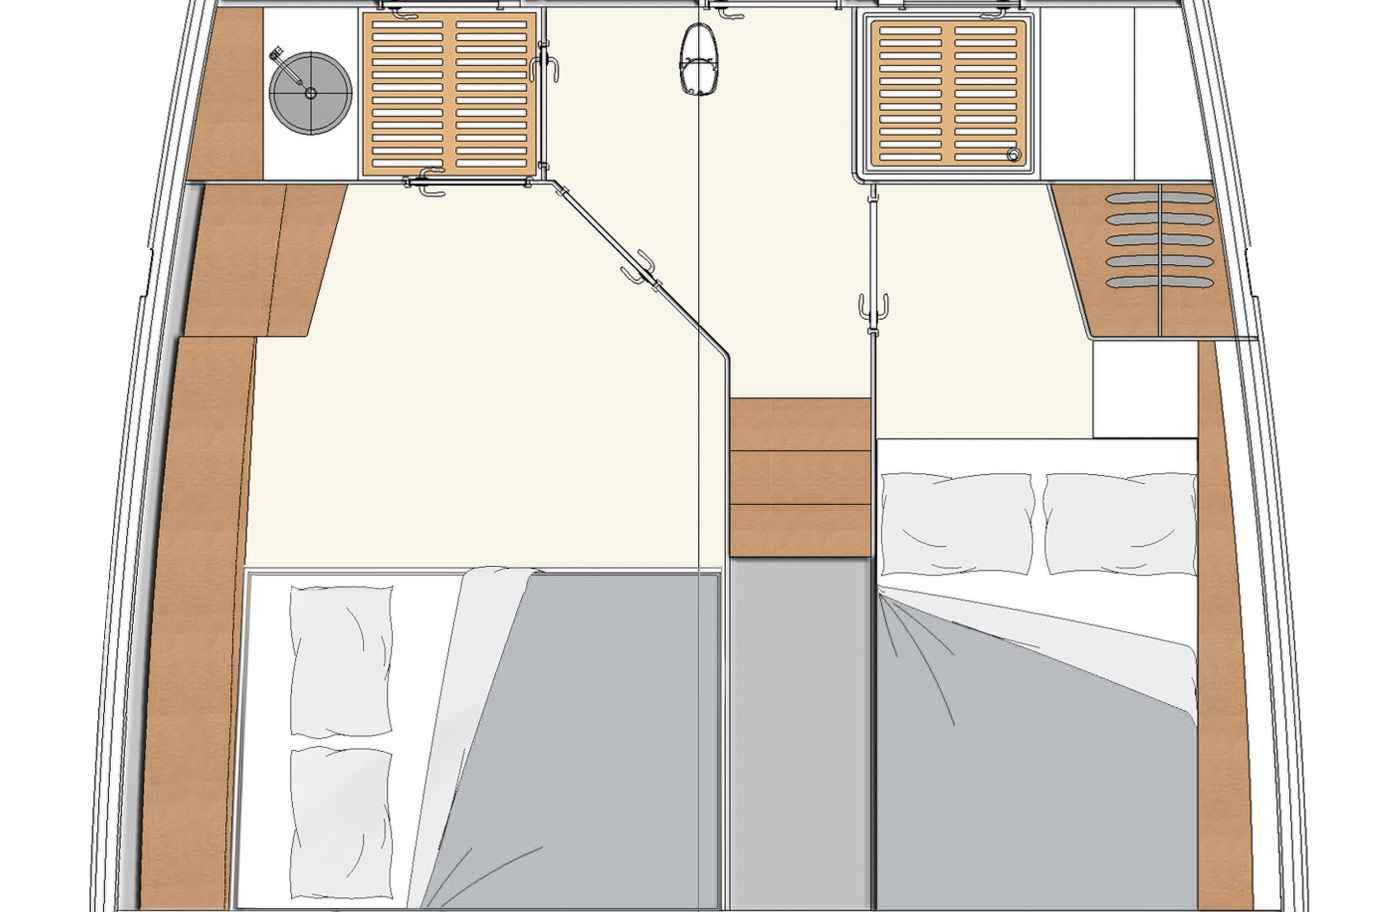 Layouts for Decksaloon 54